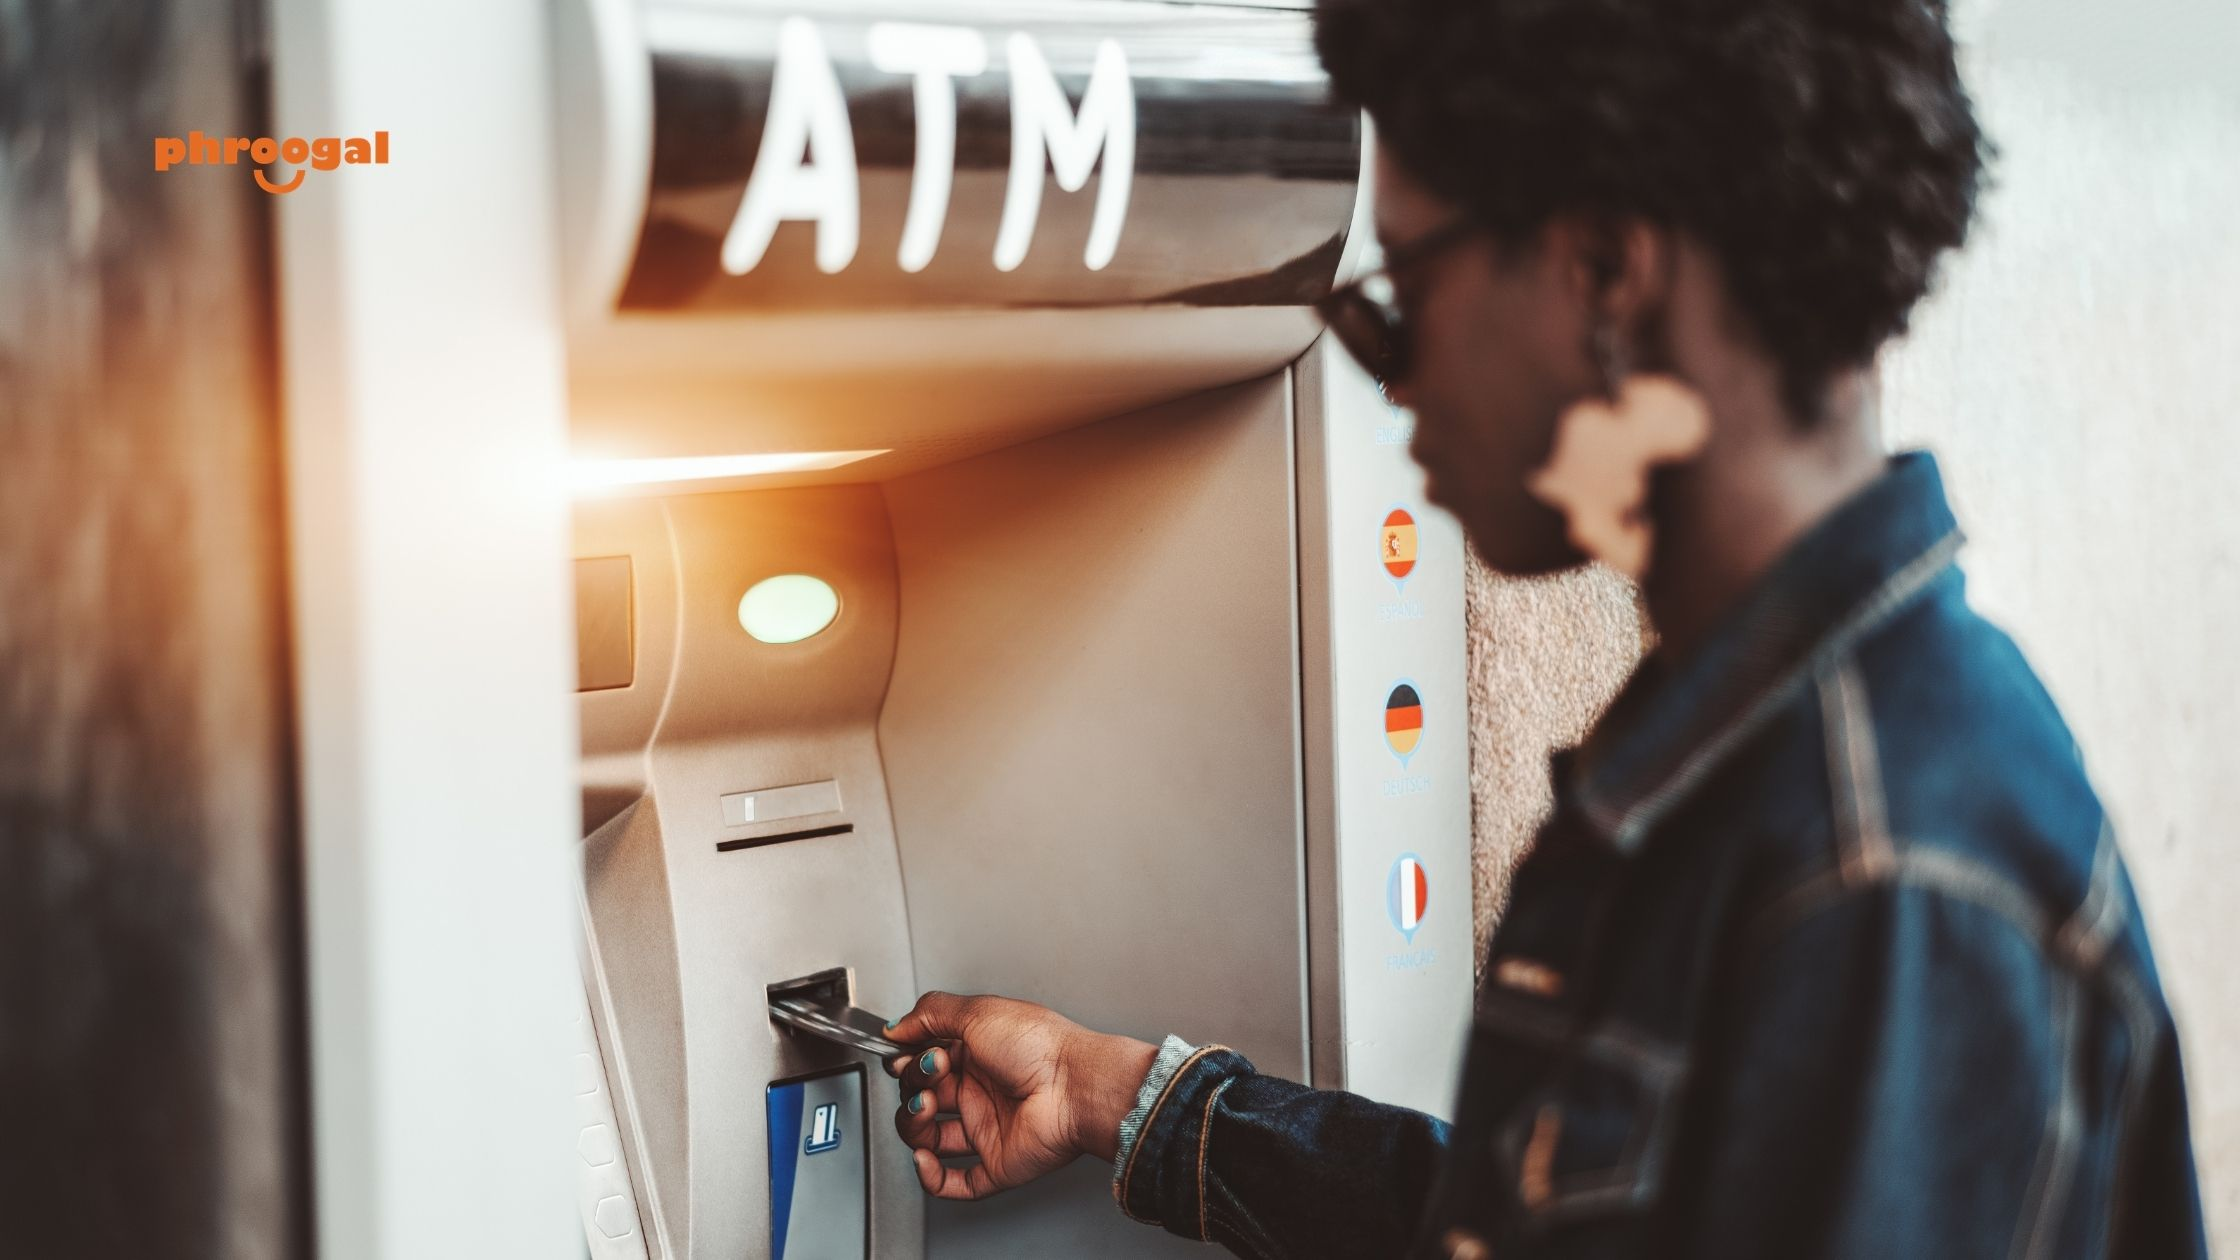 Find a Credit Union Surcharge-free ATM phroogal